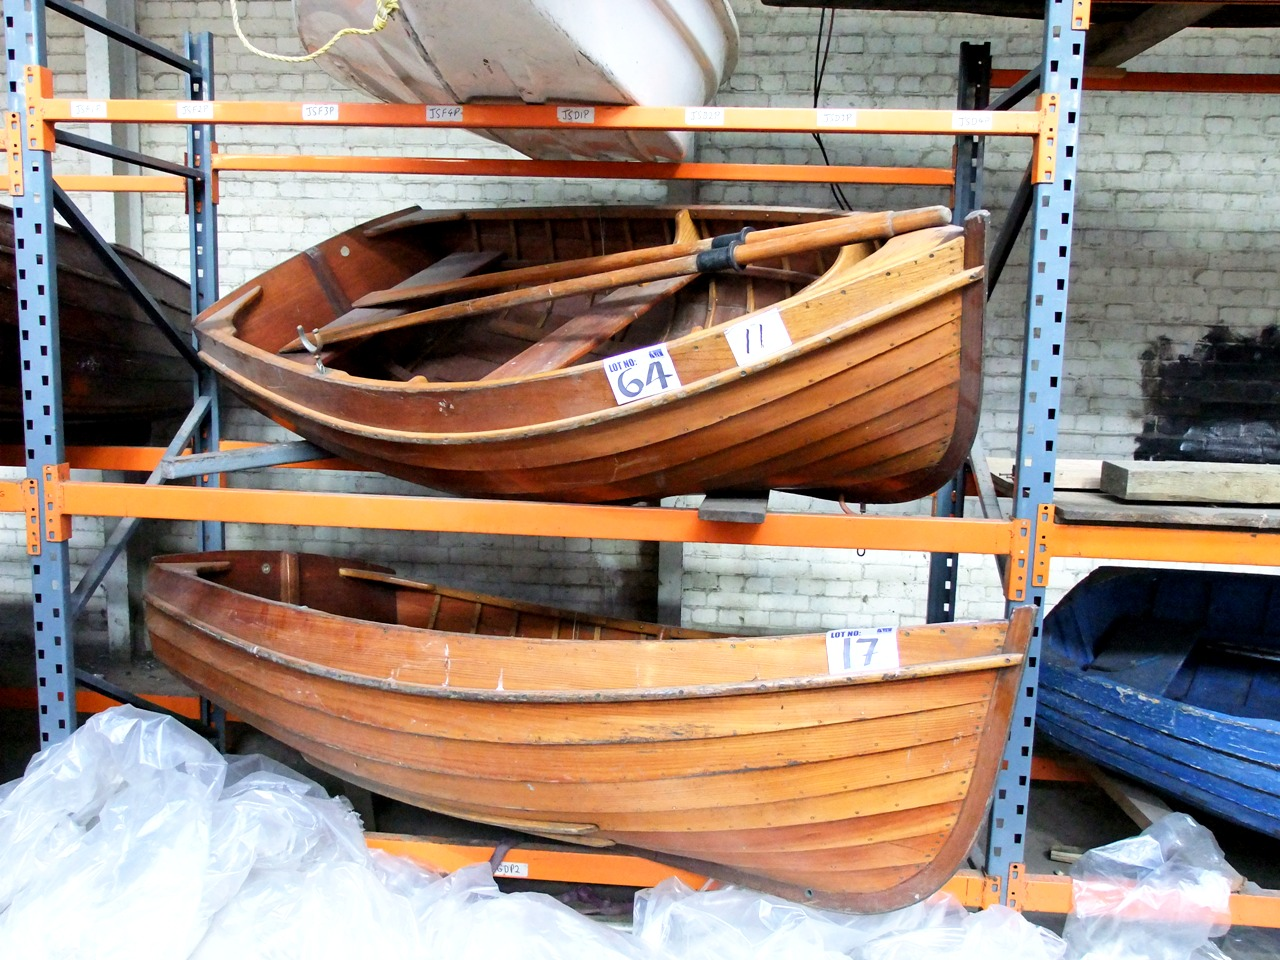 Turk's auction – are you missing the small wooden boat ...